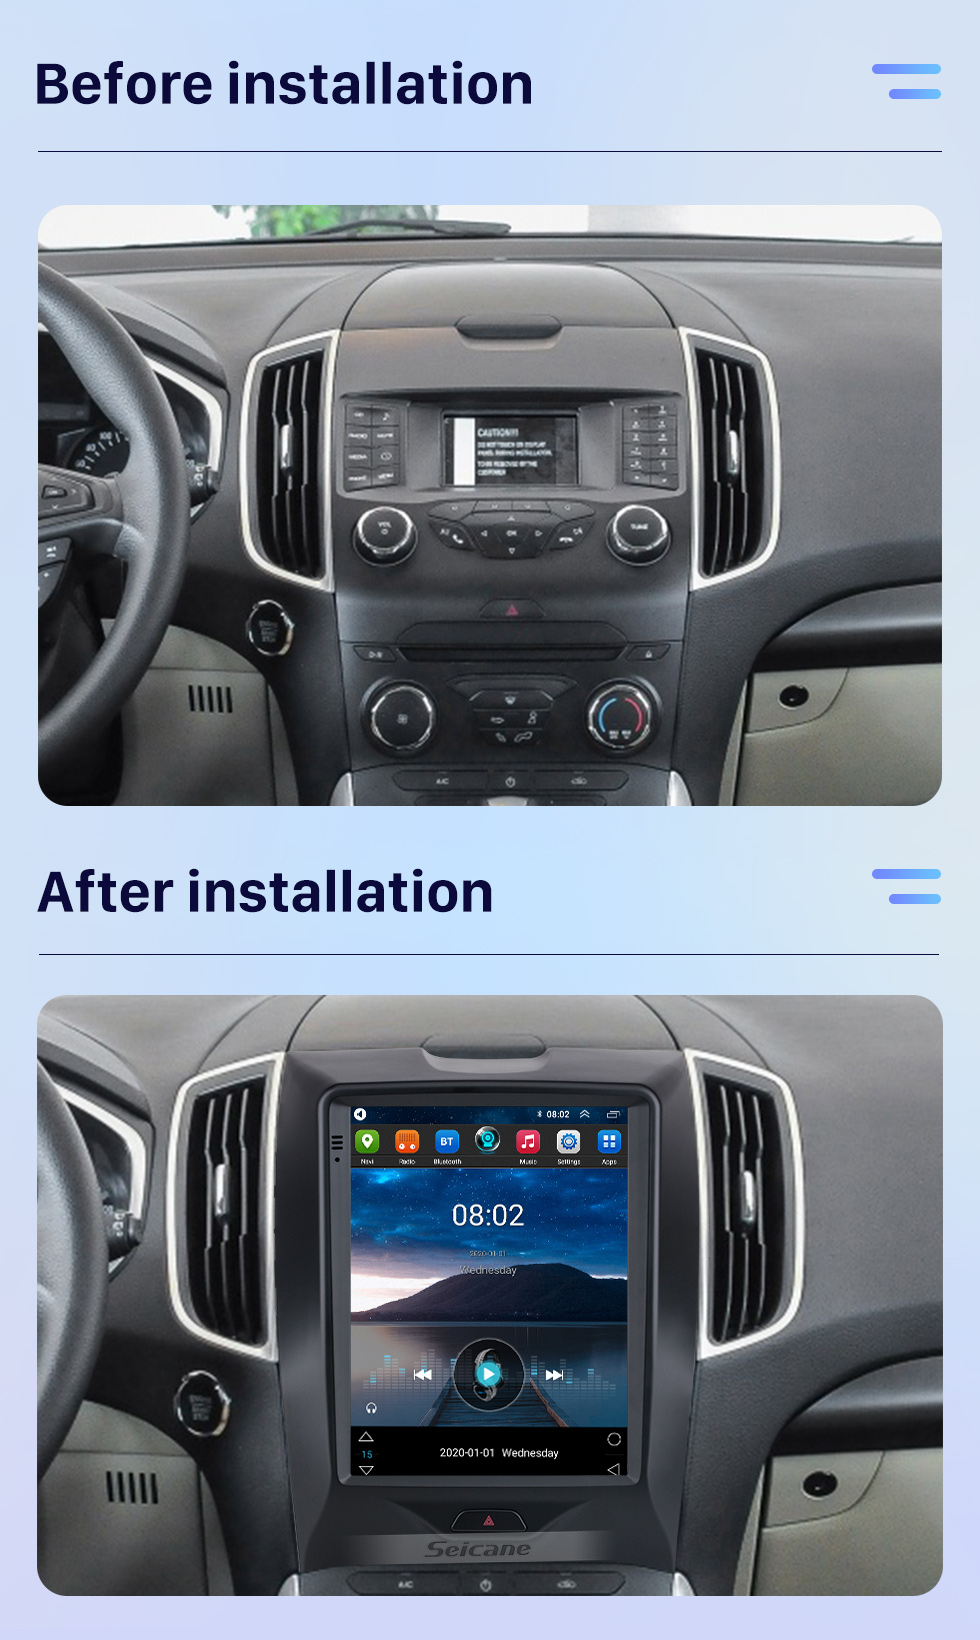 Seicane 2015-2018 Ford Edge 9.7 inch Android 10.0 GPS Navigation Radio with HD Touchscreen Bluetooth support Carplay Rear camera